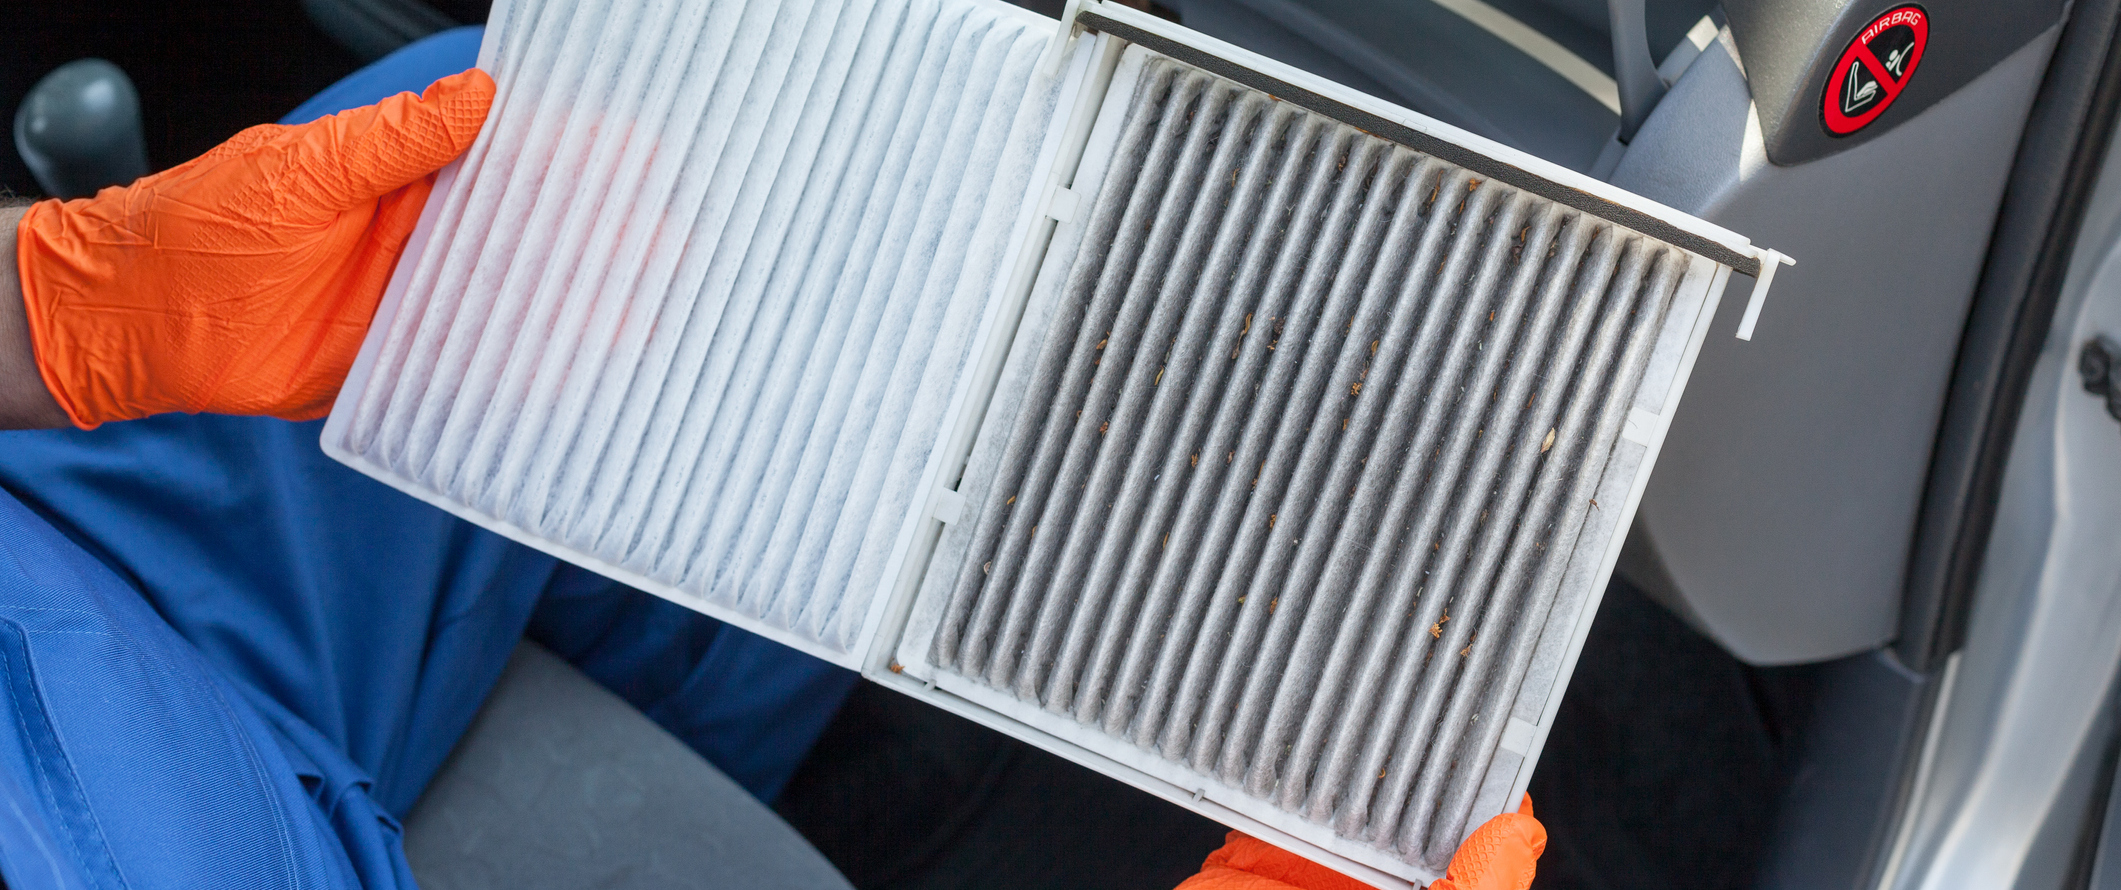 Cabin Air Filter Replacement Service in Hempstead, NY